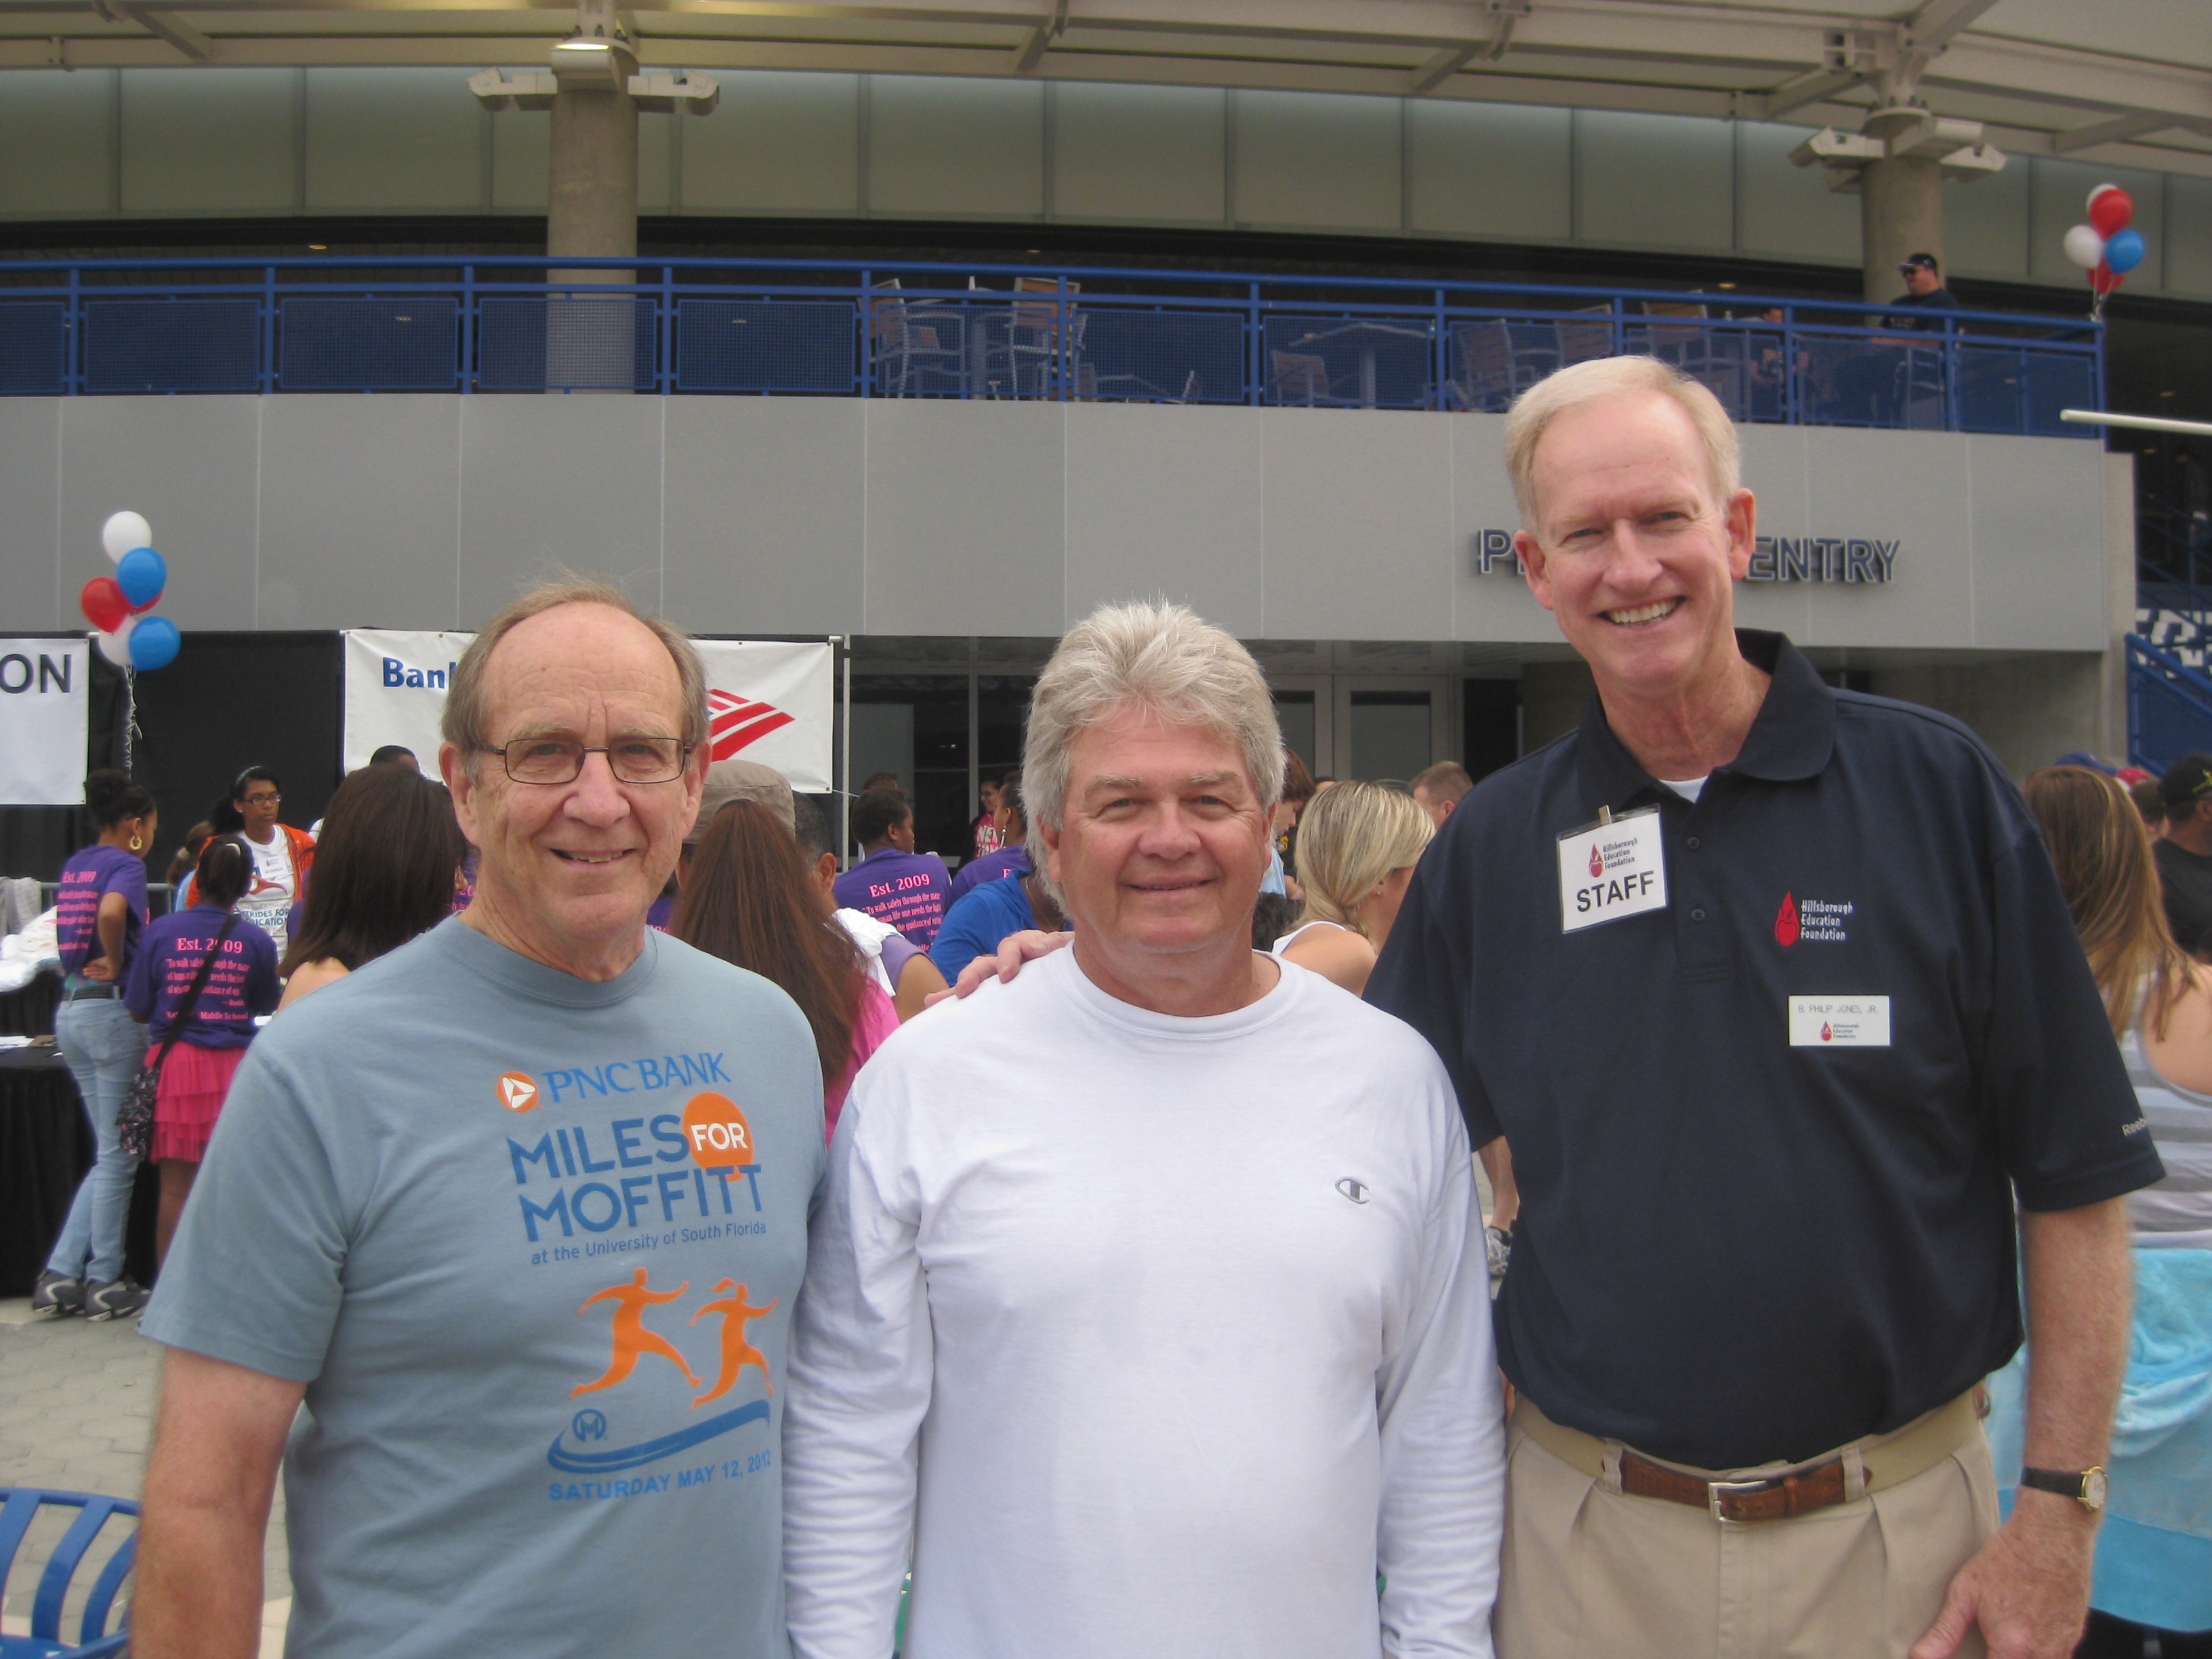 From Left to Right: HWH Shareholders Benjamin H. Hill, III and Alton C. Ward with Phil Jones, President of the Hillsborough Education Foundation.